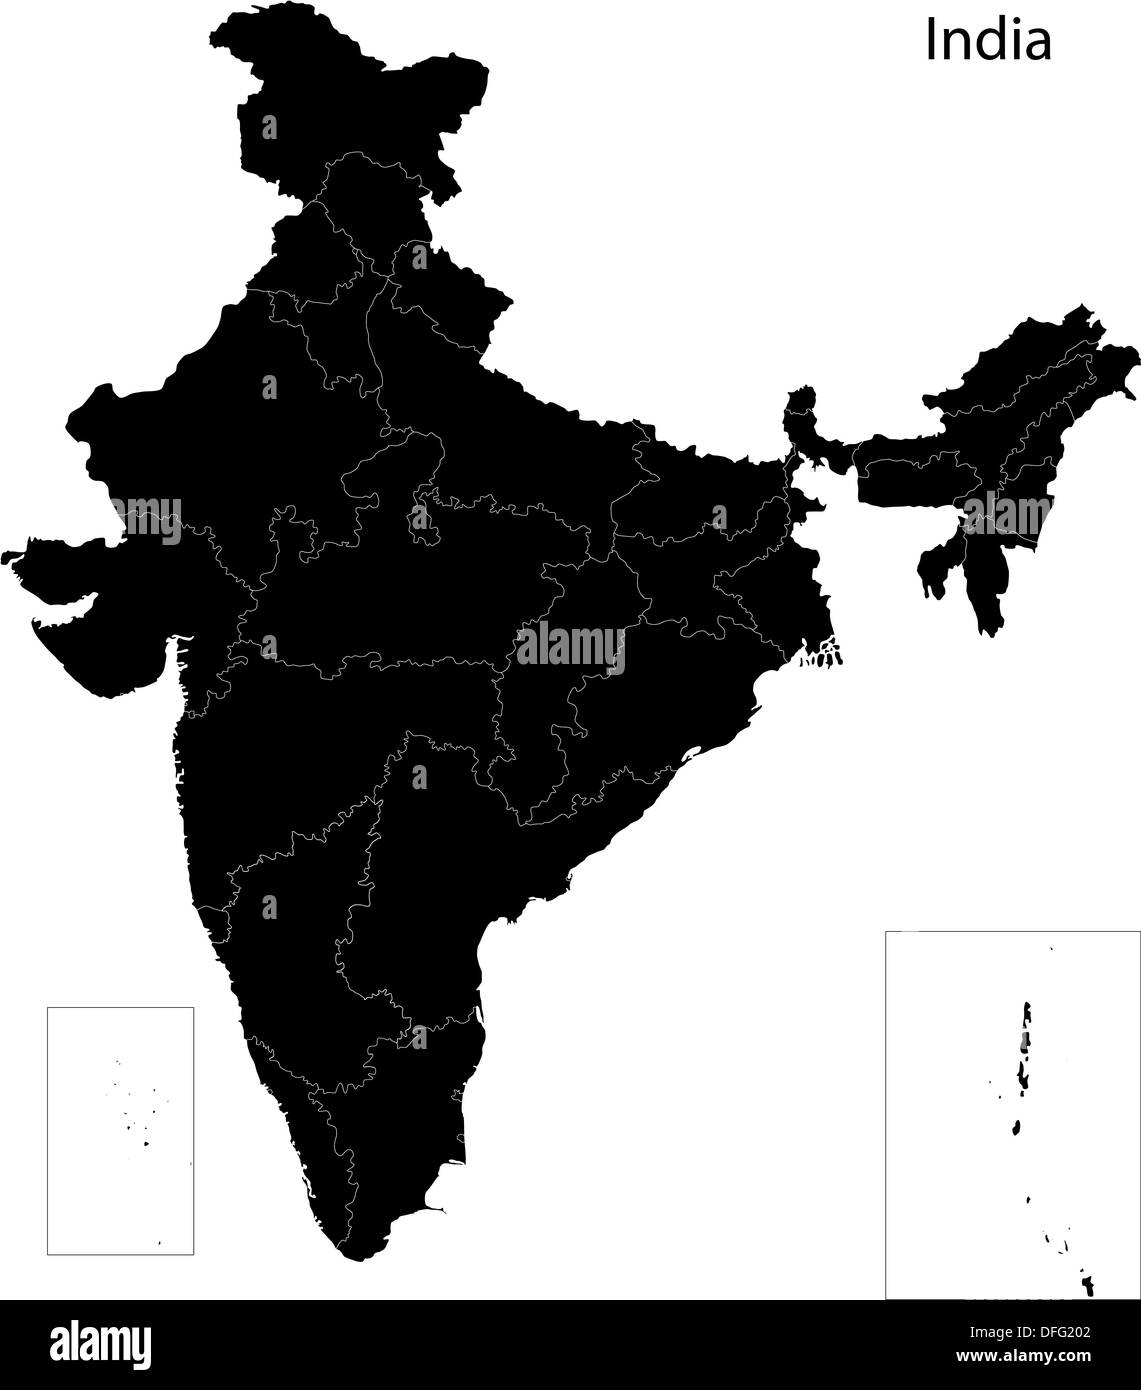 Black India Map Stock Photo Alamy